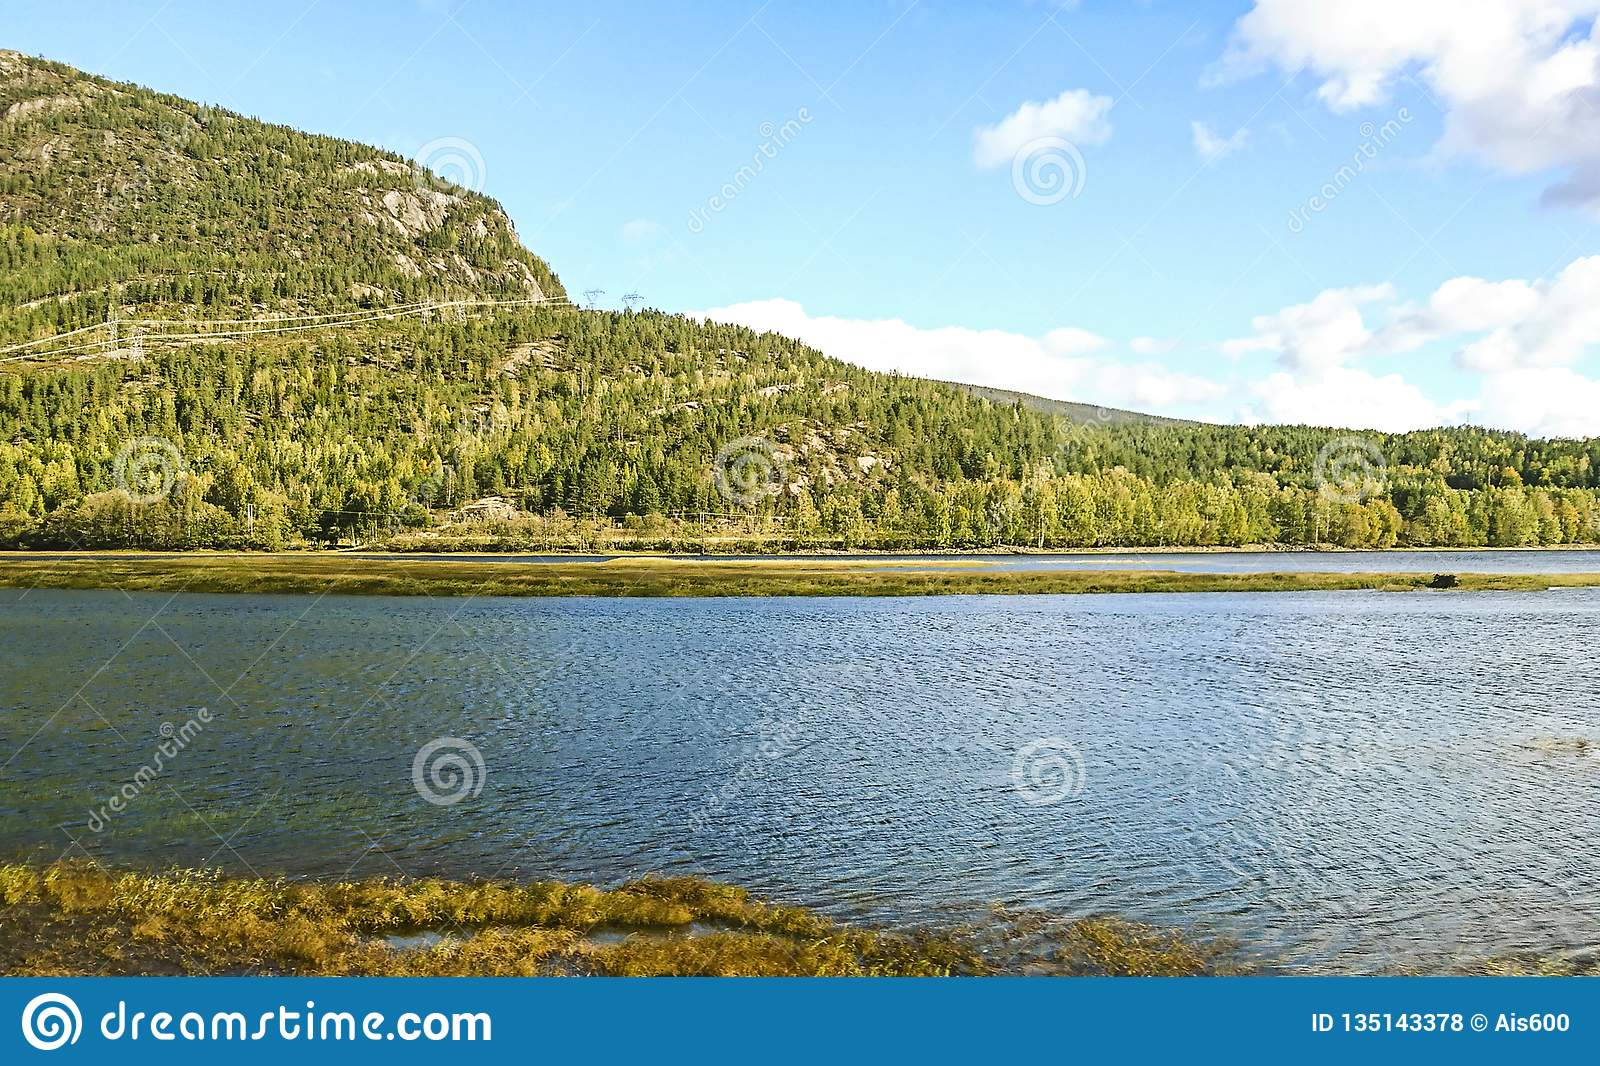 Scenic Norway landscape in a daylight with the river, forest and stones in the front of view.